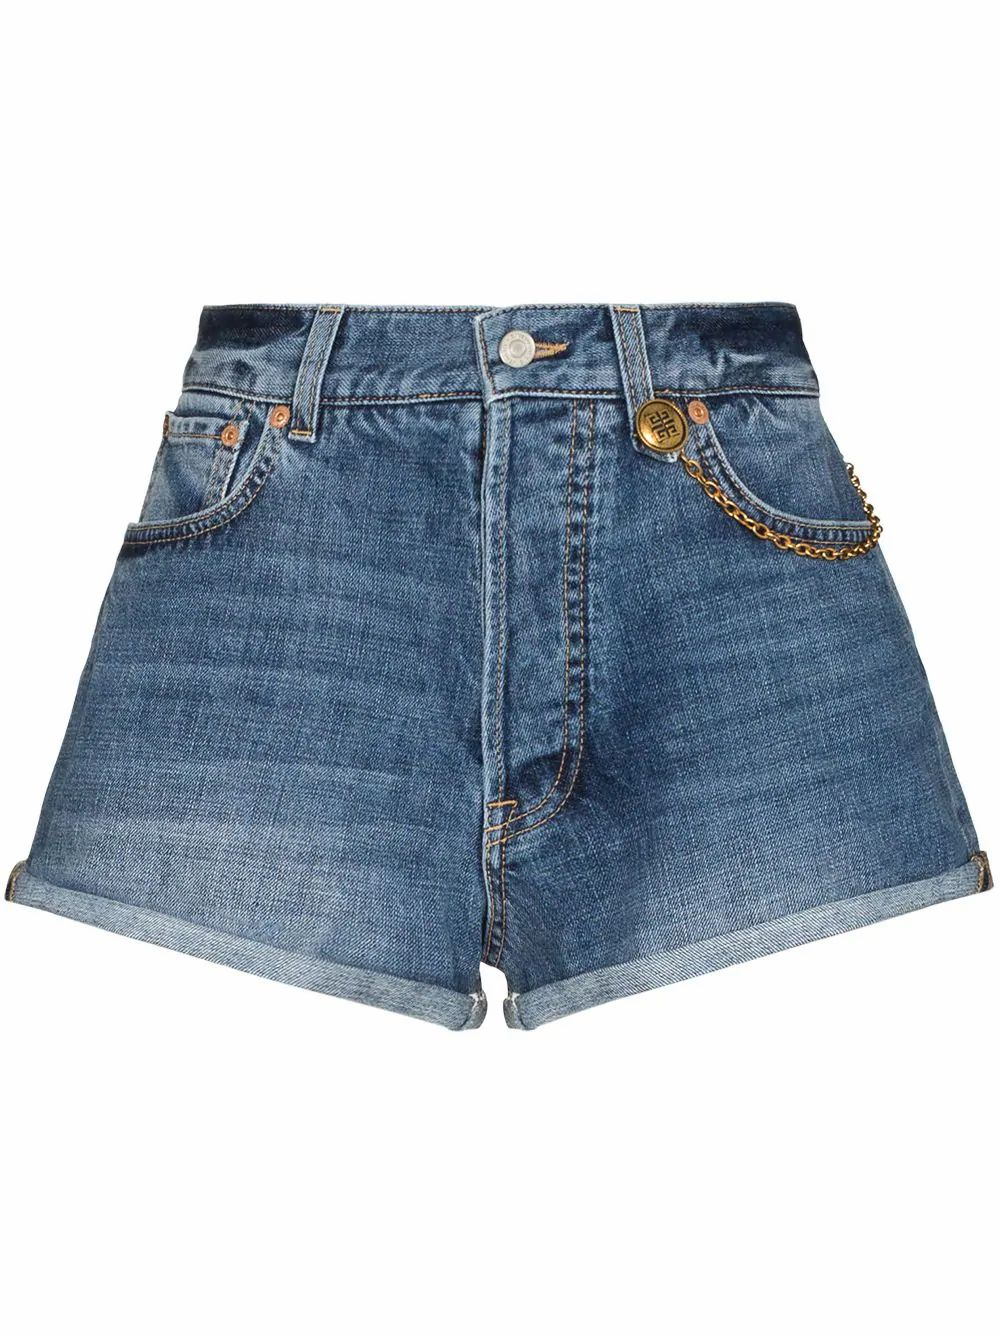 Givenchy GIVENCHY WOMEN'S BLUE COTTON SHORTS